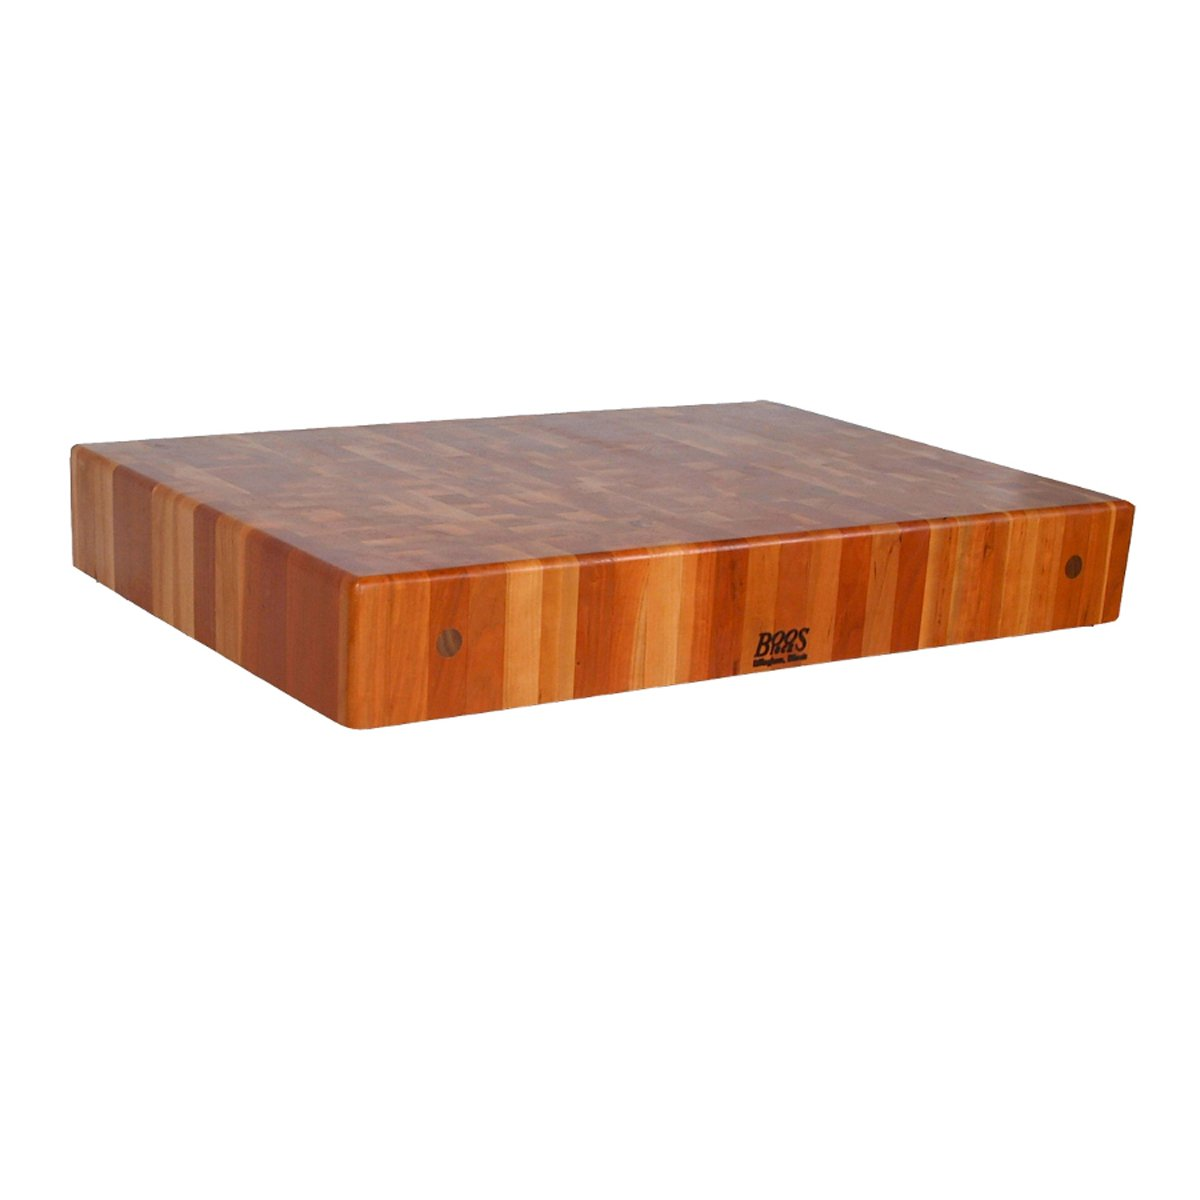 John Boos CHYBBIT4-2425 End Grain Butcher Block Island Top 24 x 25 x 4'' Cherry Wood